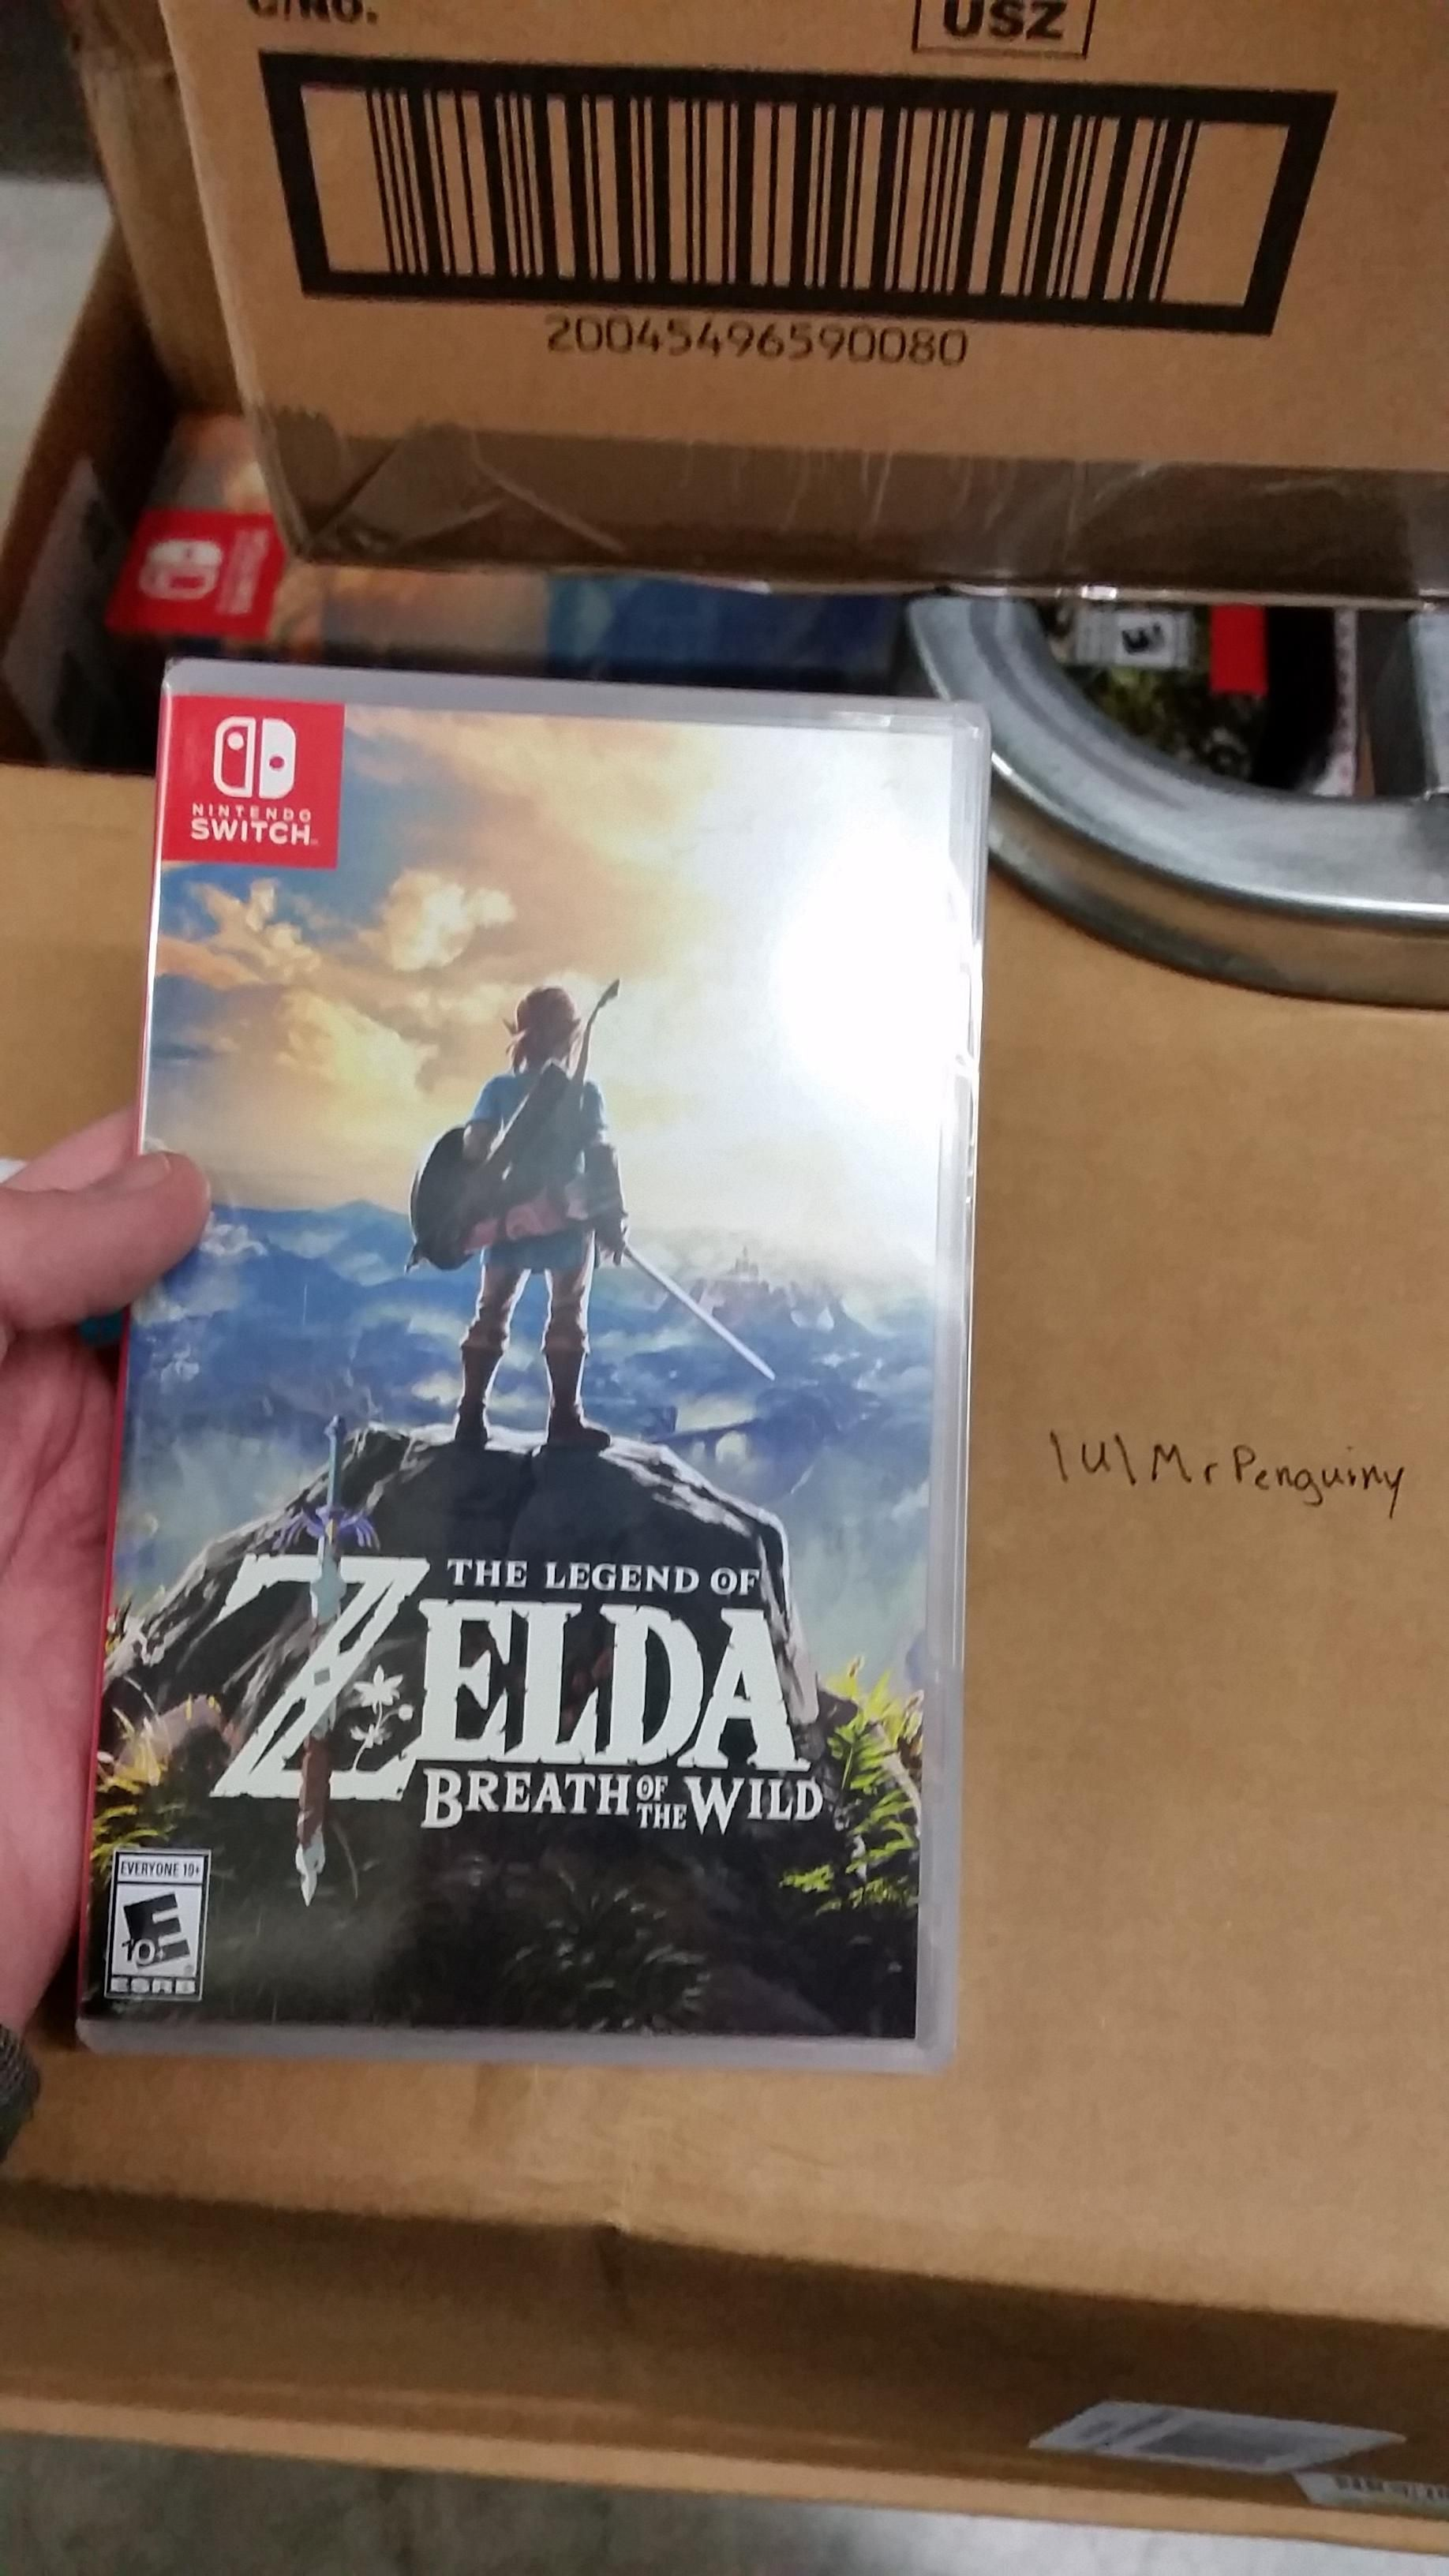 Guys I'm holding it in my hands... For More Information... >>> http://bit.ly/29otcOB <<< ------- #gaming #games #gamer #videogames #videogame #anime #video #Funny #xbox #nintendo #TVGM #surprise #gamergirl #gamers #gamerguy #instagamer #girlgamer #bhombingamerica #pcgamer #gamerlife #gamergirls #xboxgamer #girlgamer #gtav